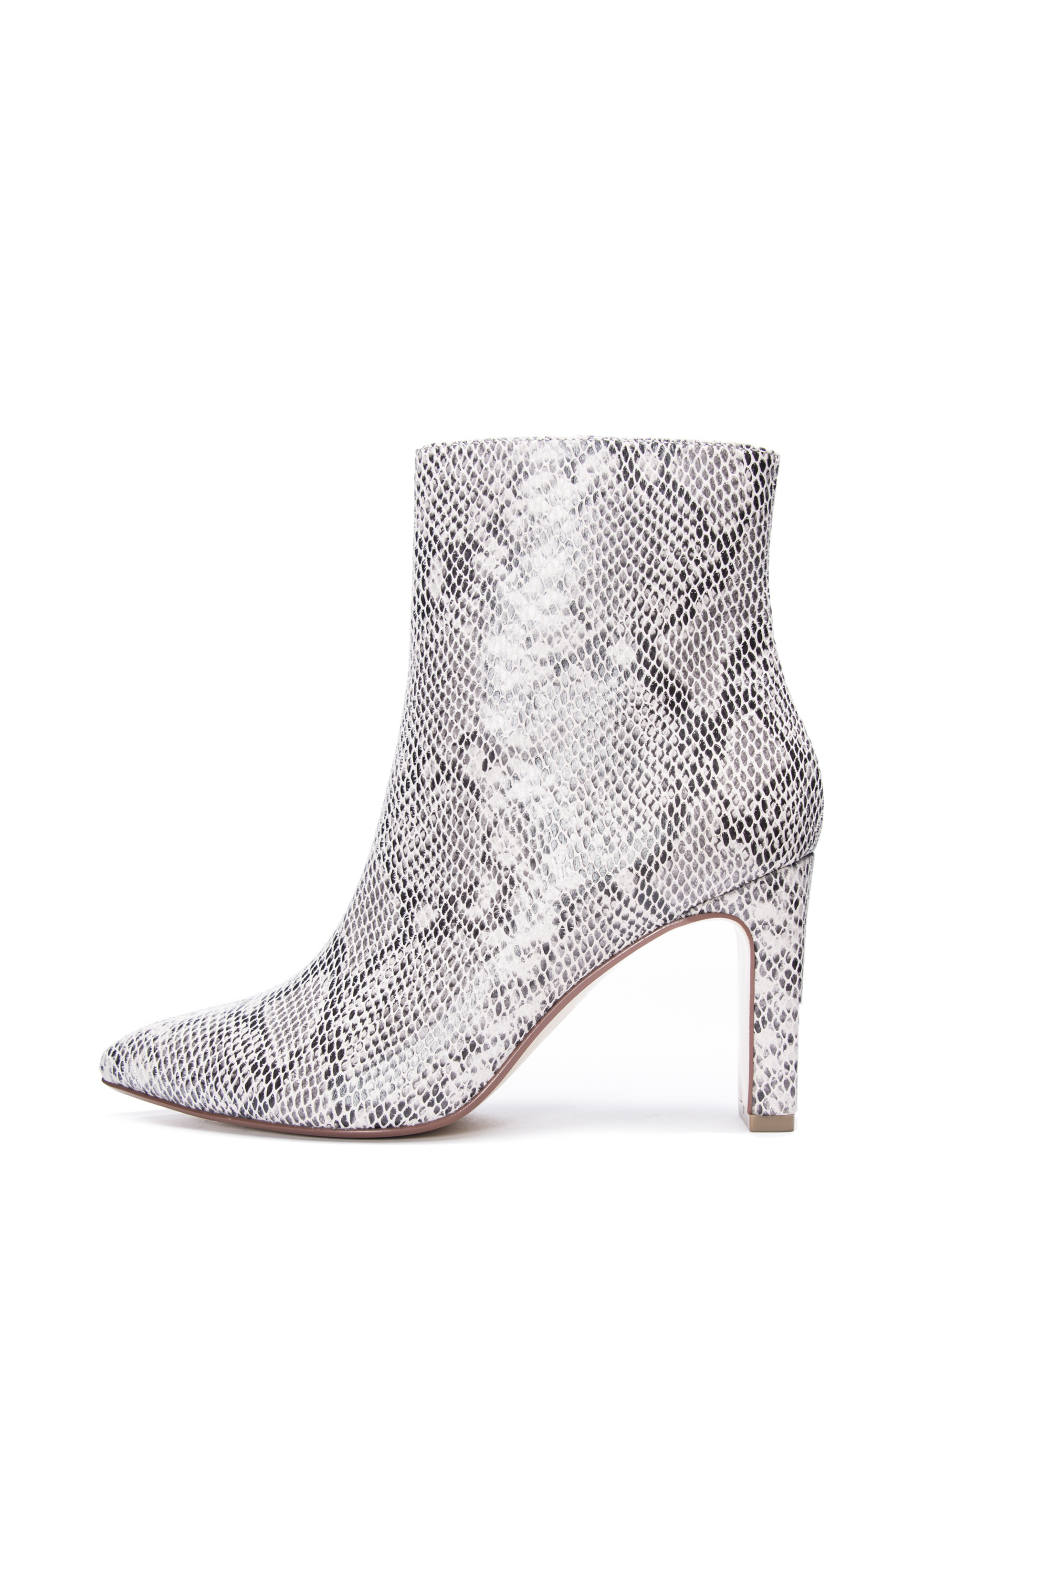 Chinese Laundry Erin Snake Bootie - Main Image